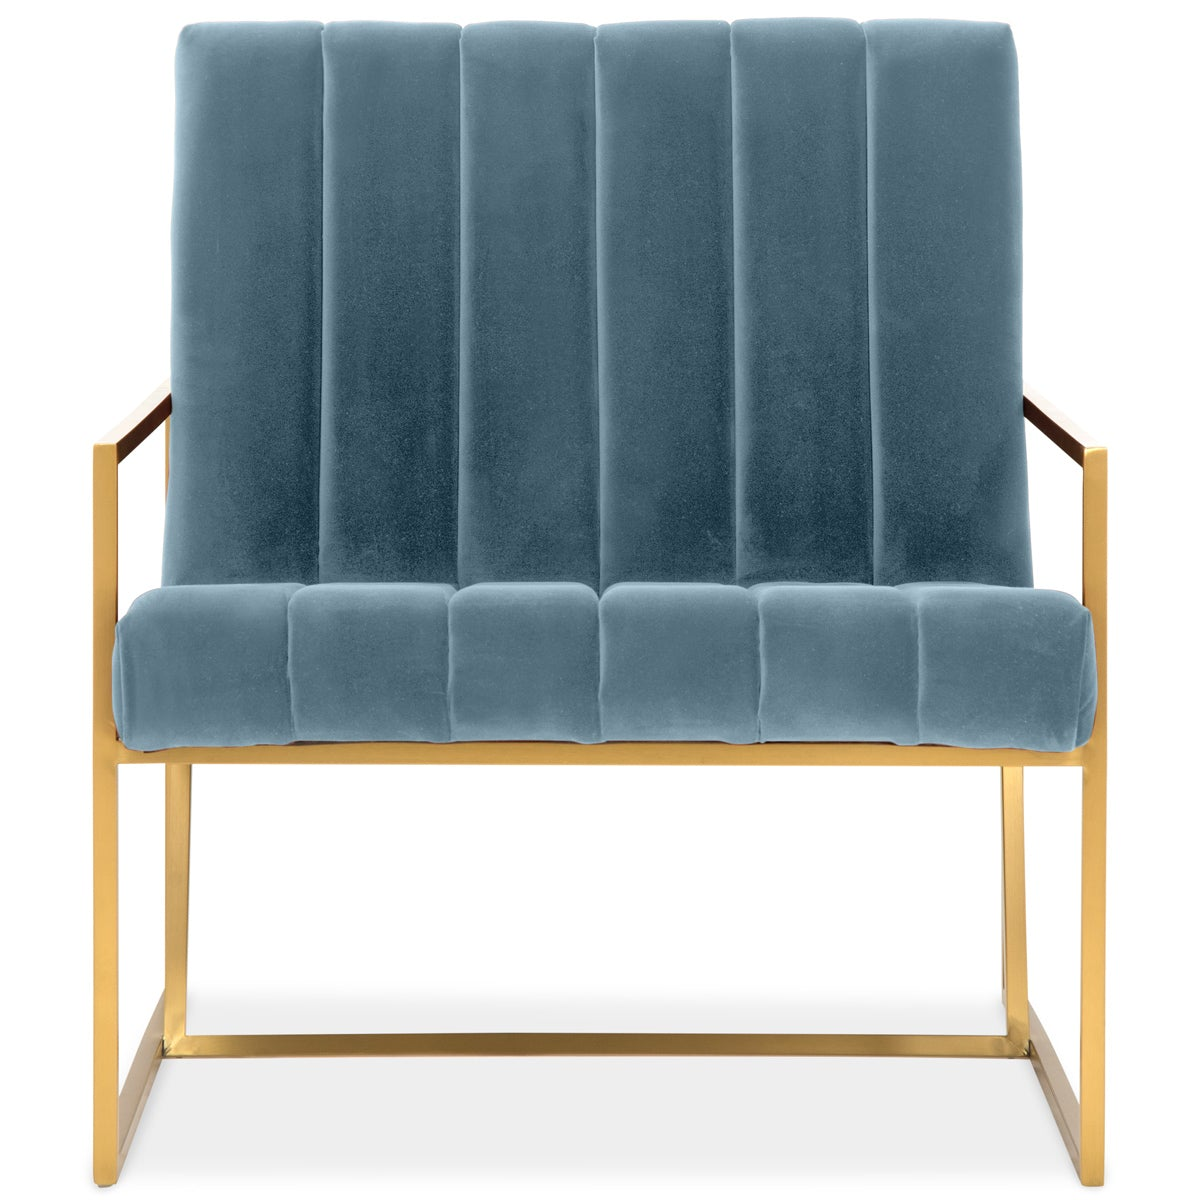 Santorini Chair in Fat Channel Tufted Velvet - ModShop1.com